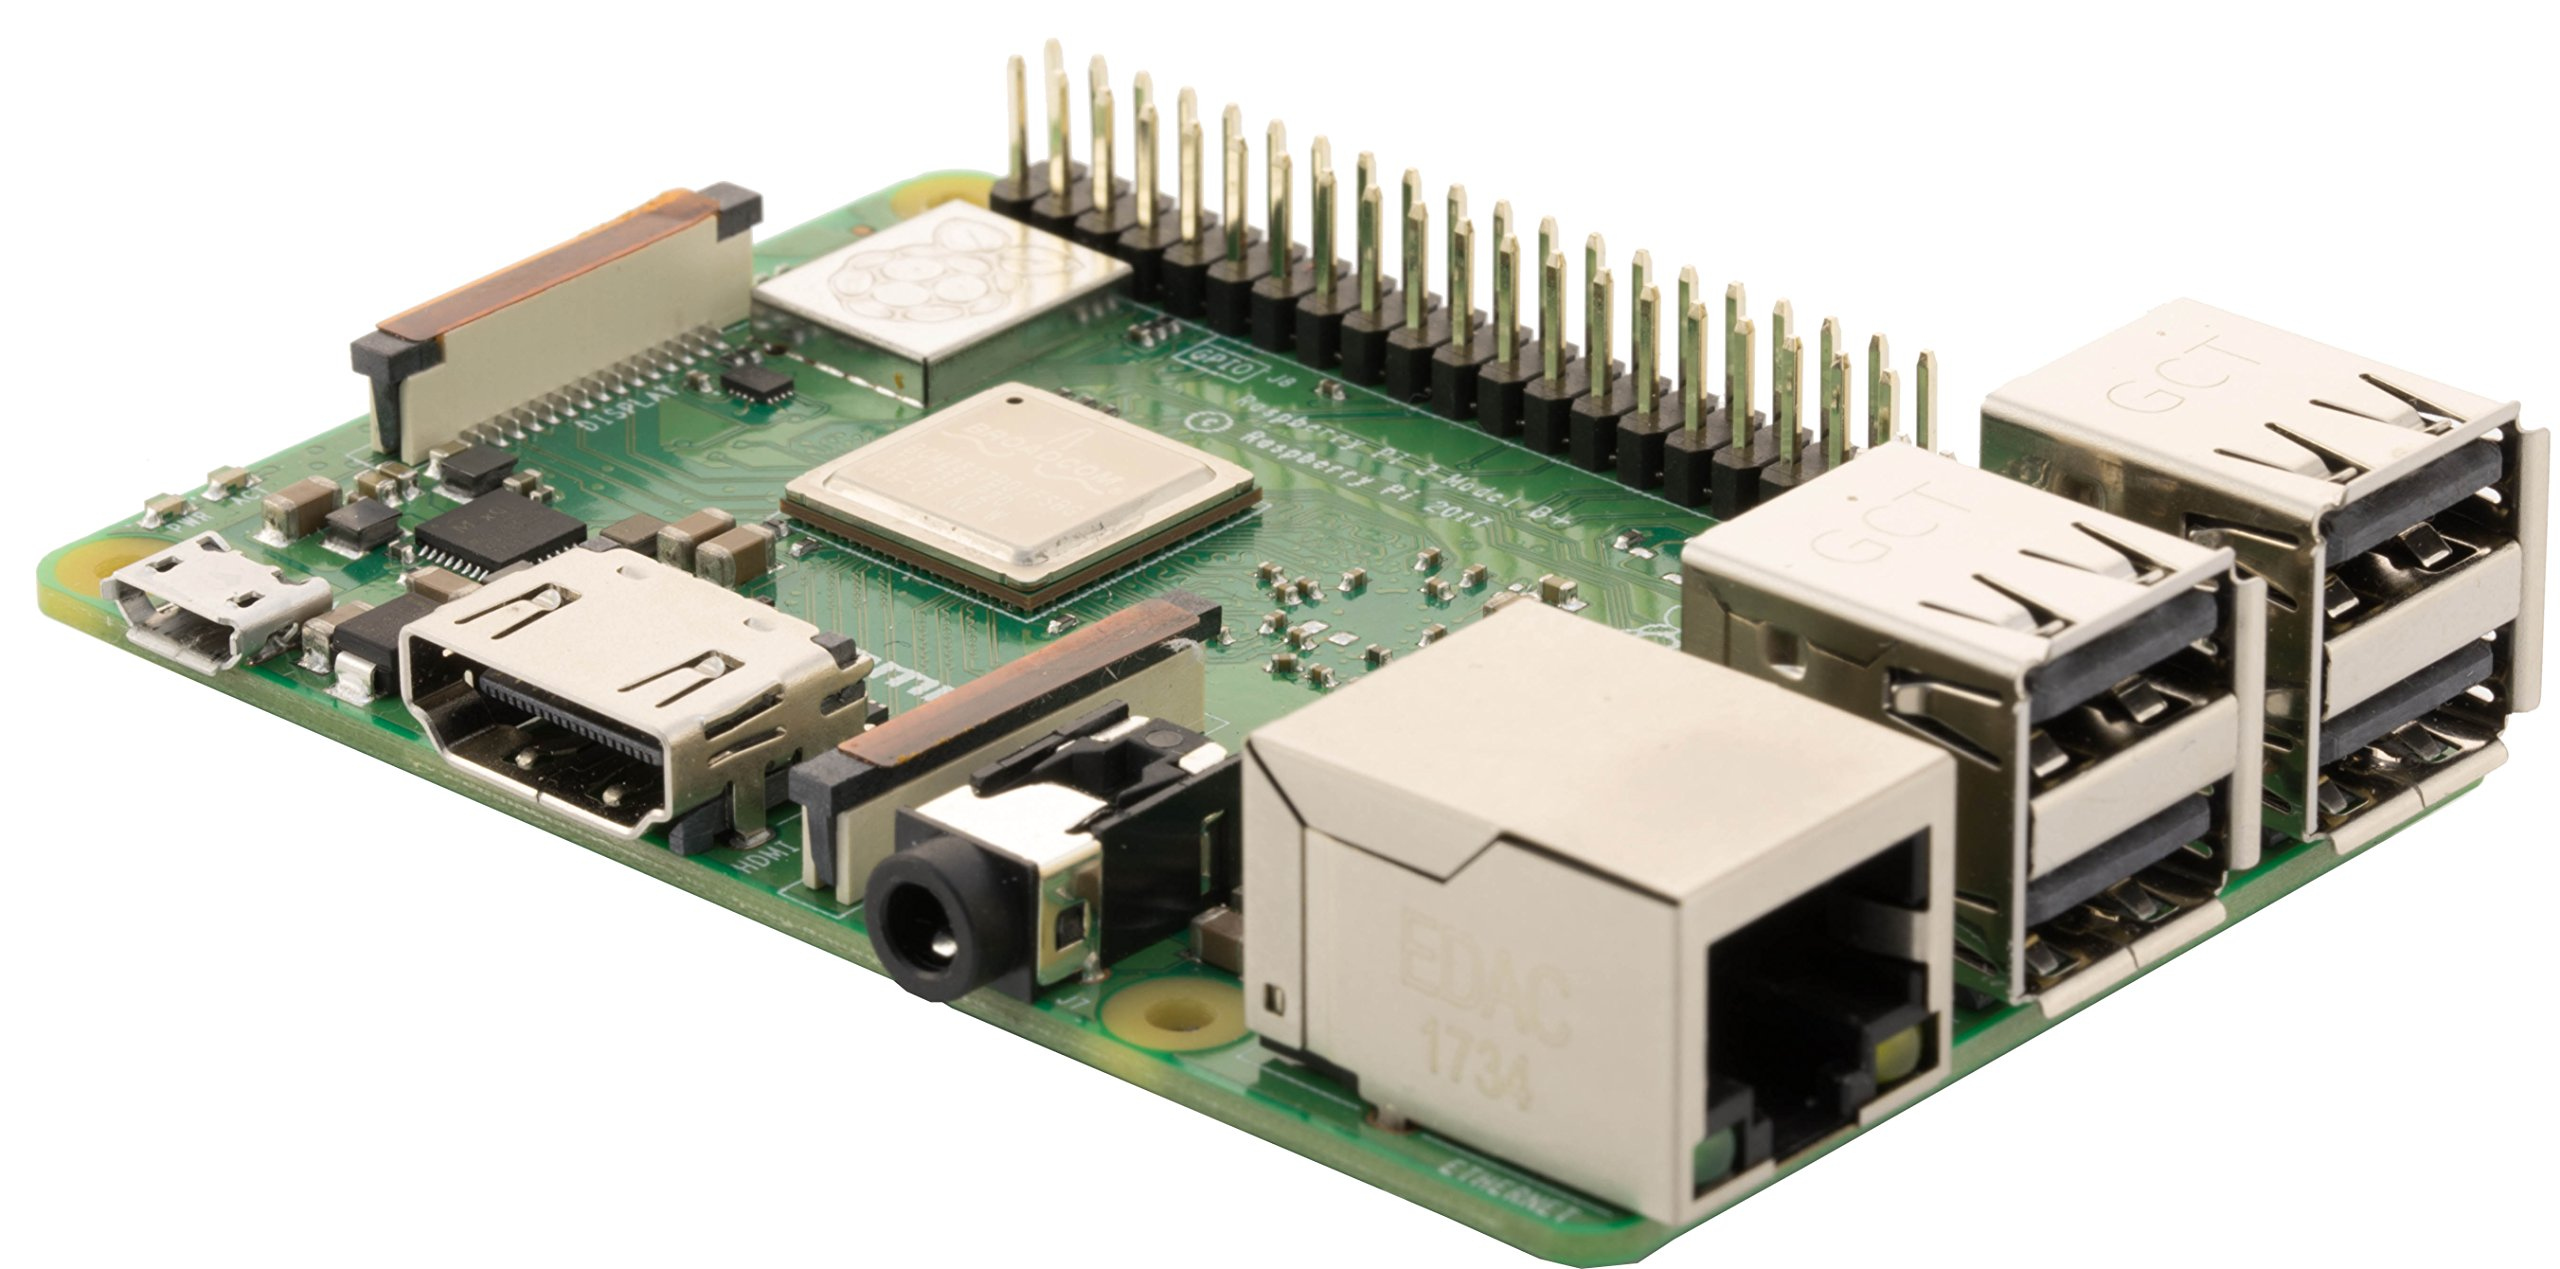 Vilros Raspberry Pi 3 Model B+ (B Plus)-With 2.5A Power Supply [LATEST MODEL 2018] by Vilros (Image #7)